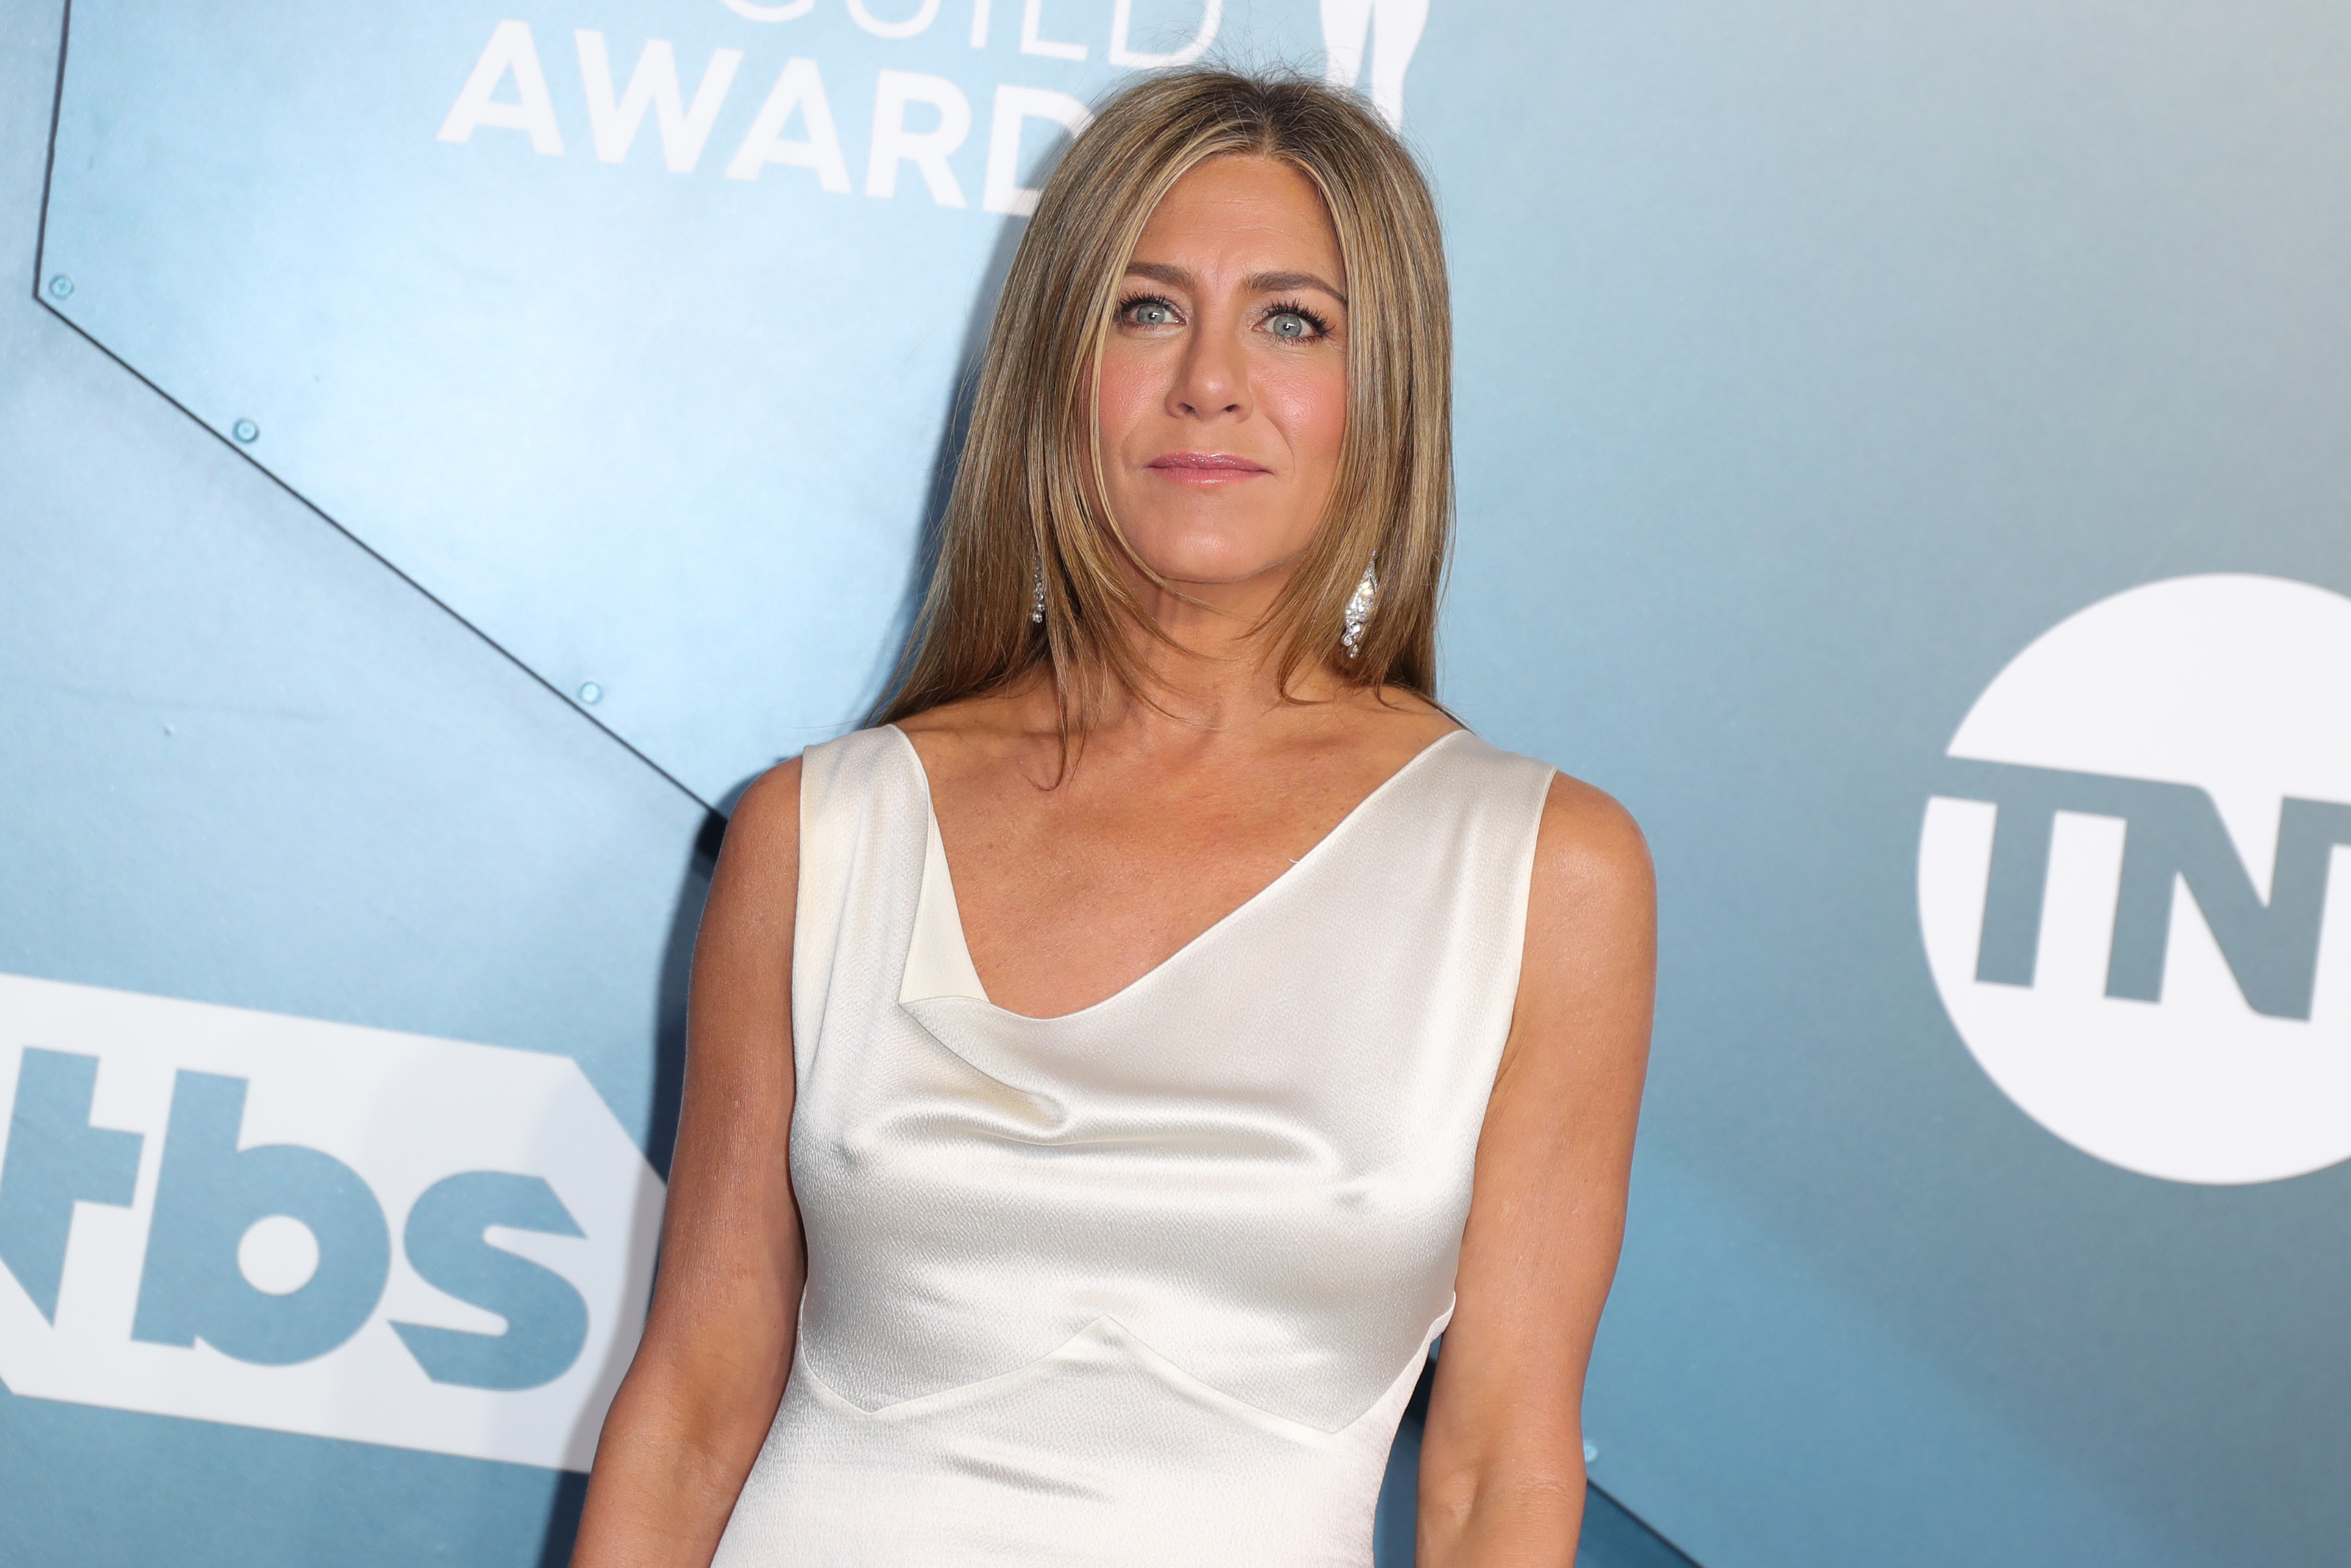 Jennifer Aniston Putting Out Fire During 2020 Emmys Is The Birth Of A Meme